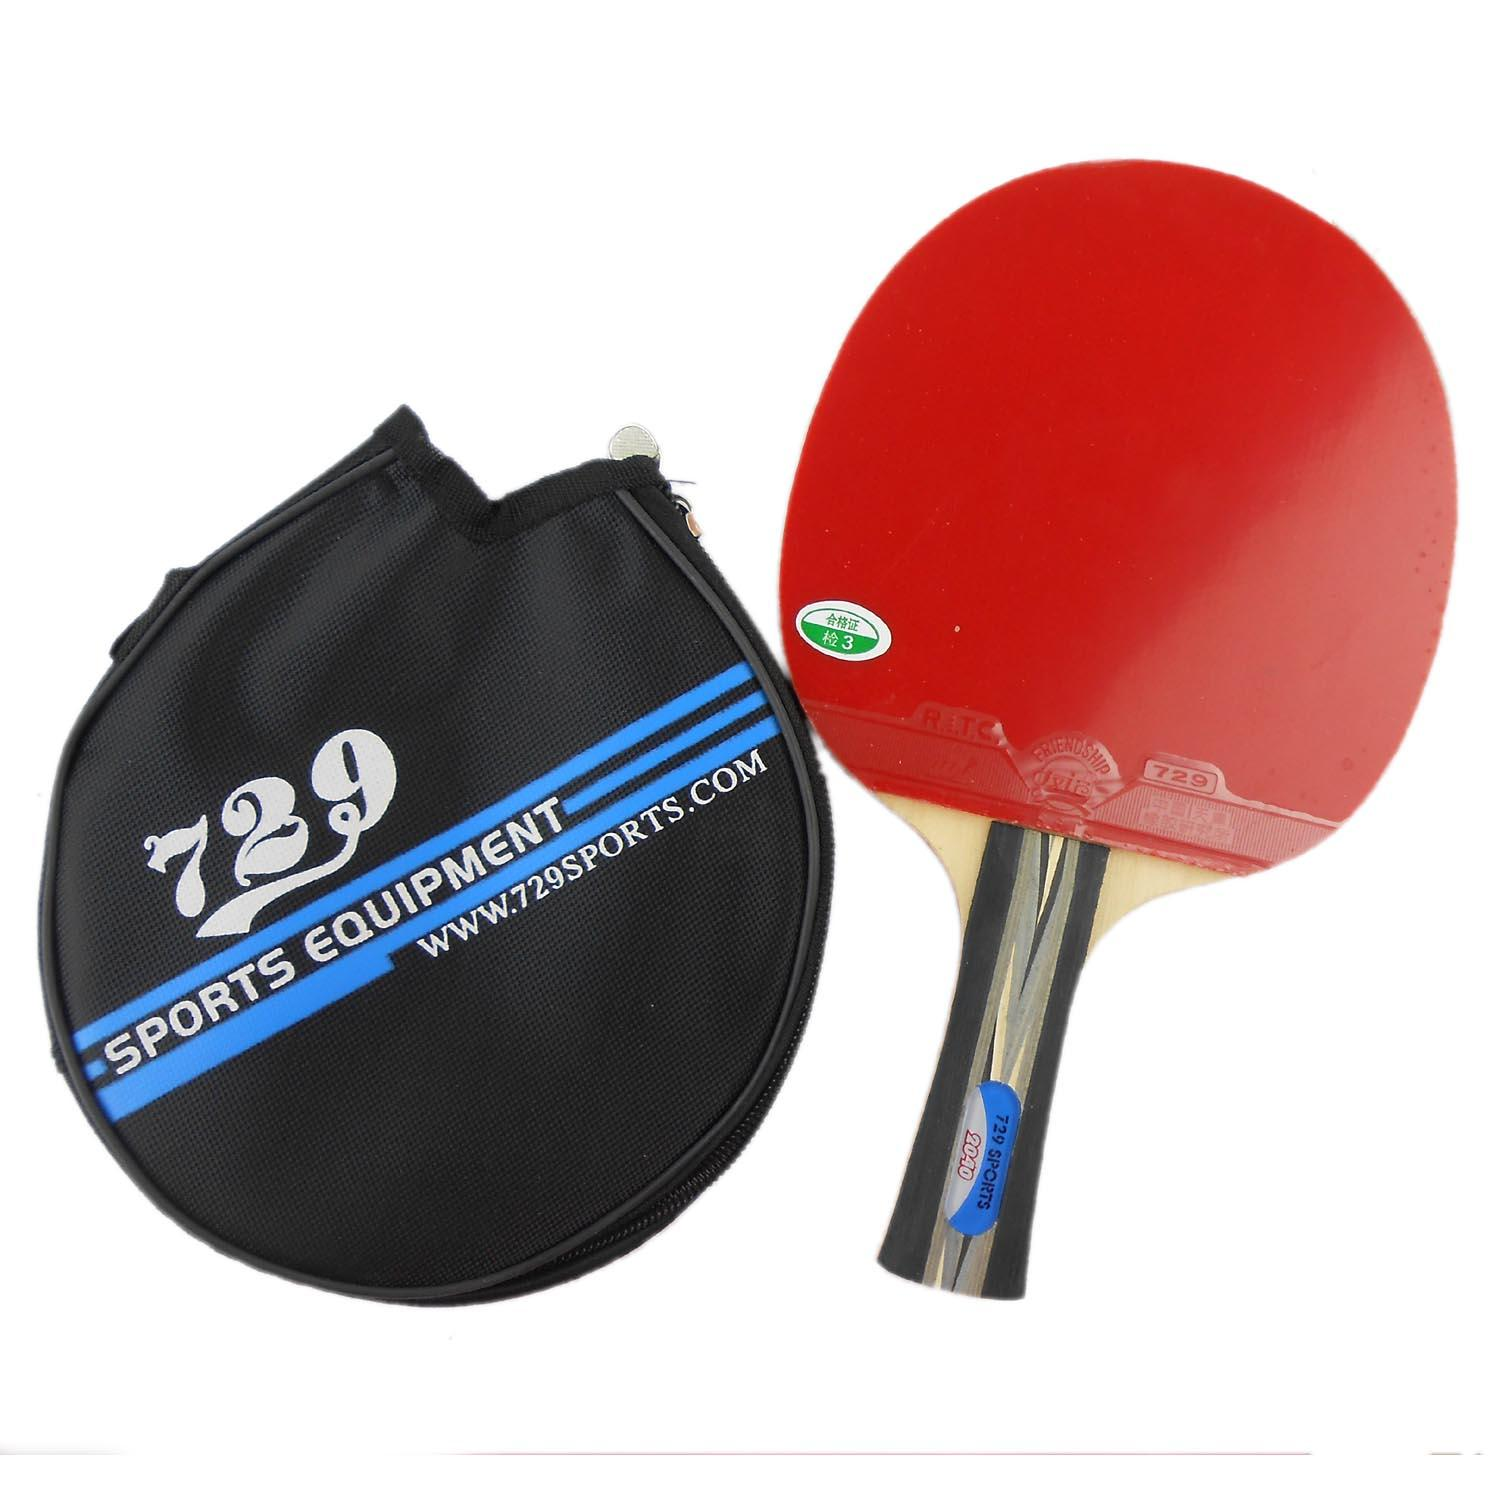 Ritc 729 Friendship 2040 Pips In Table Tennis Ping